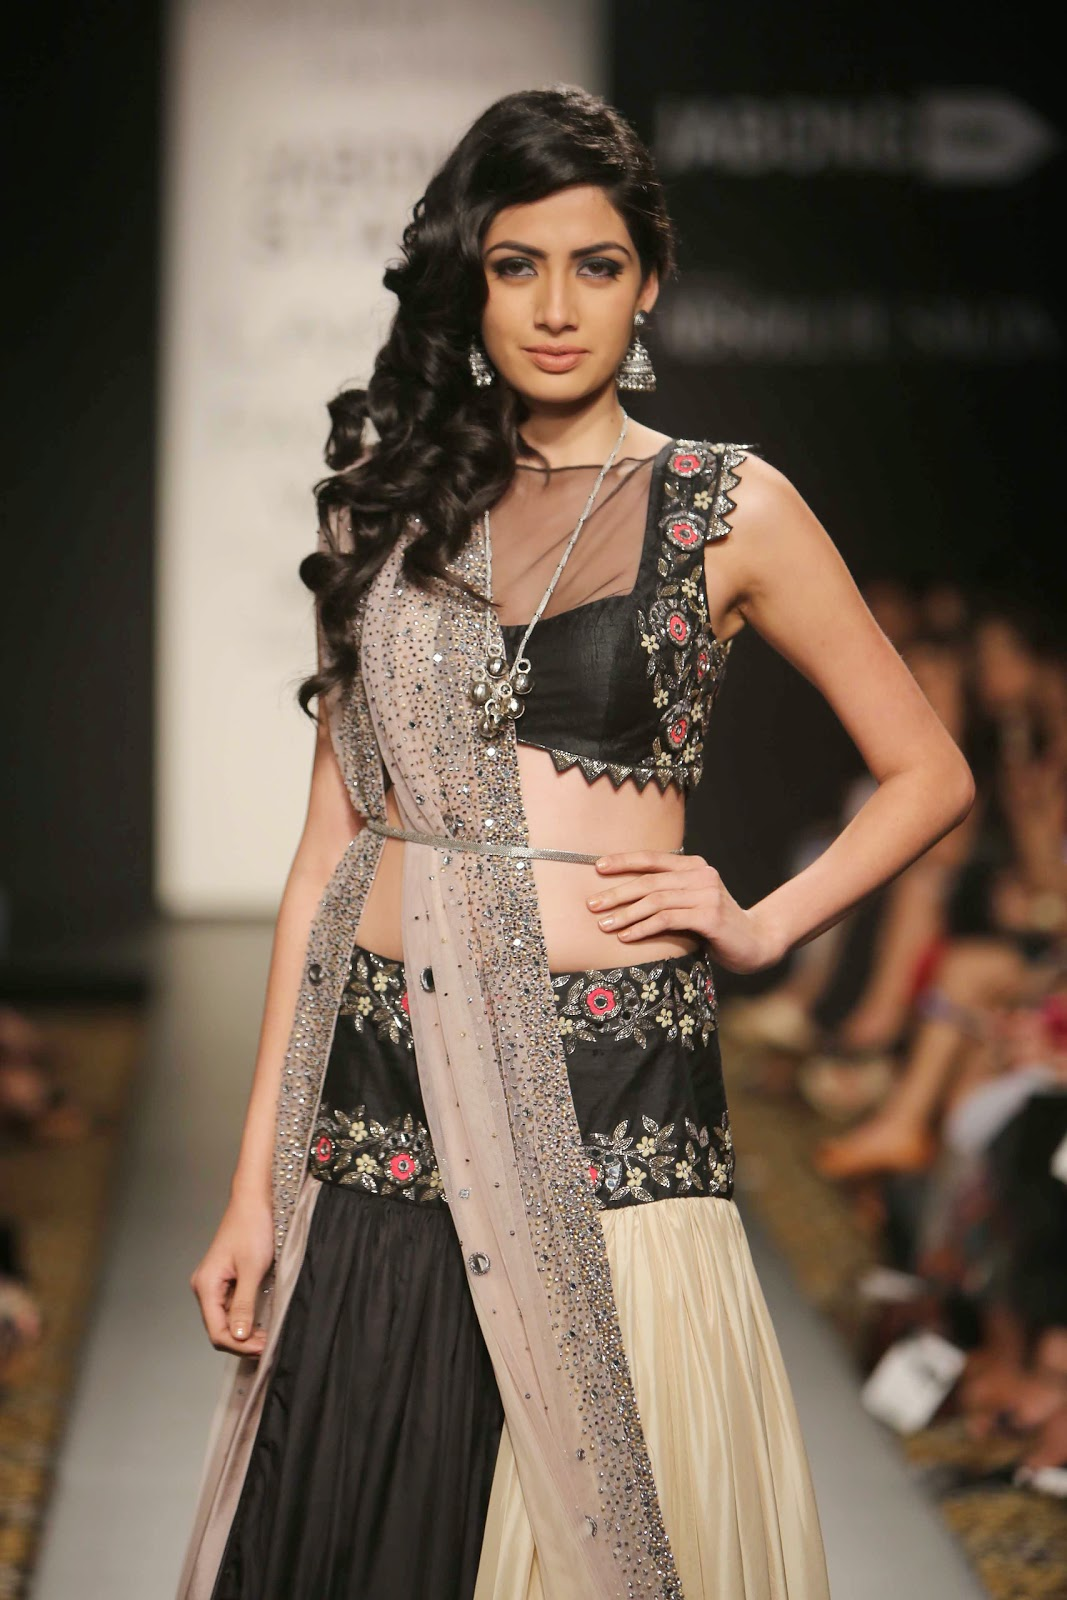 Model poses for Arpita Mehta at LFW WF 2014